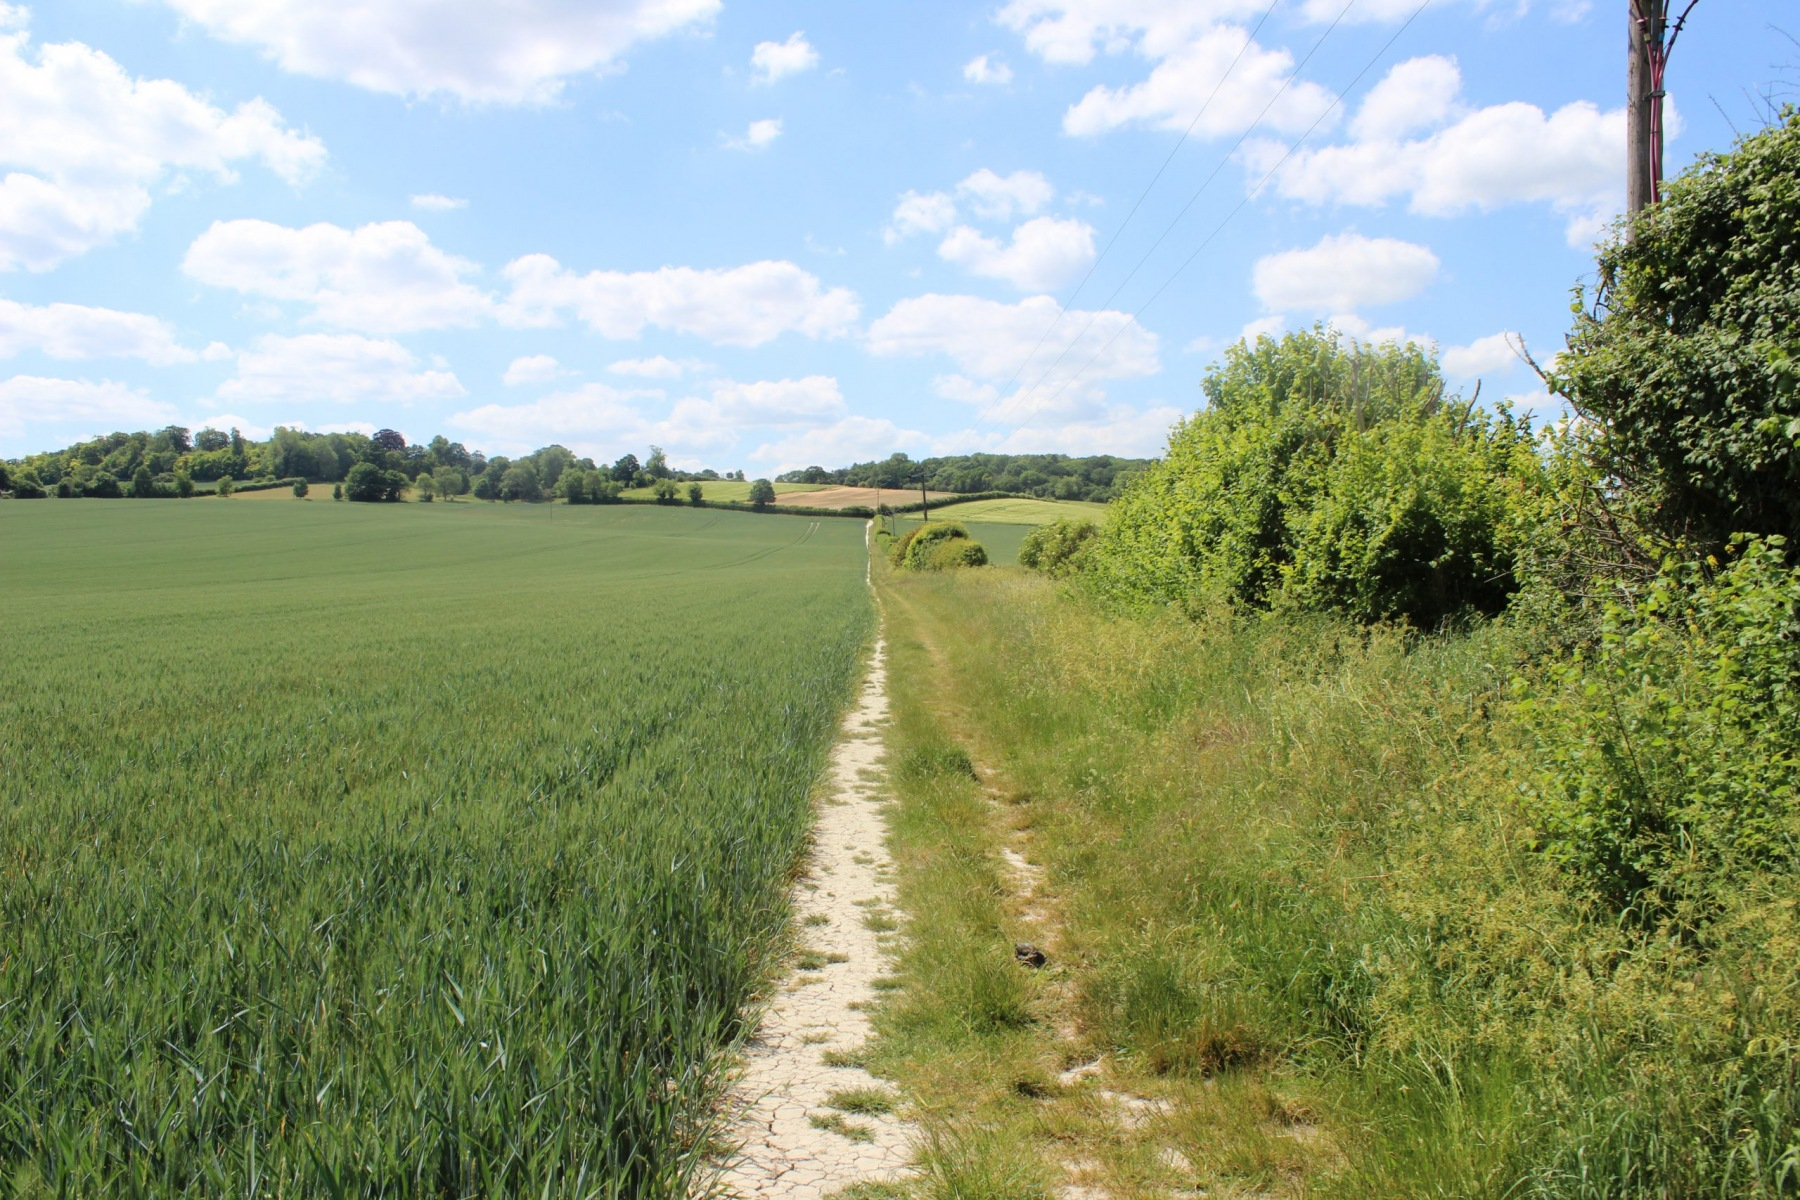 Path towards Pegsdon outside Pirton